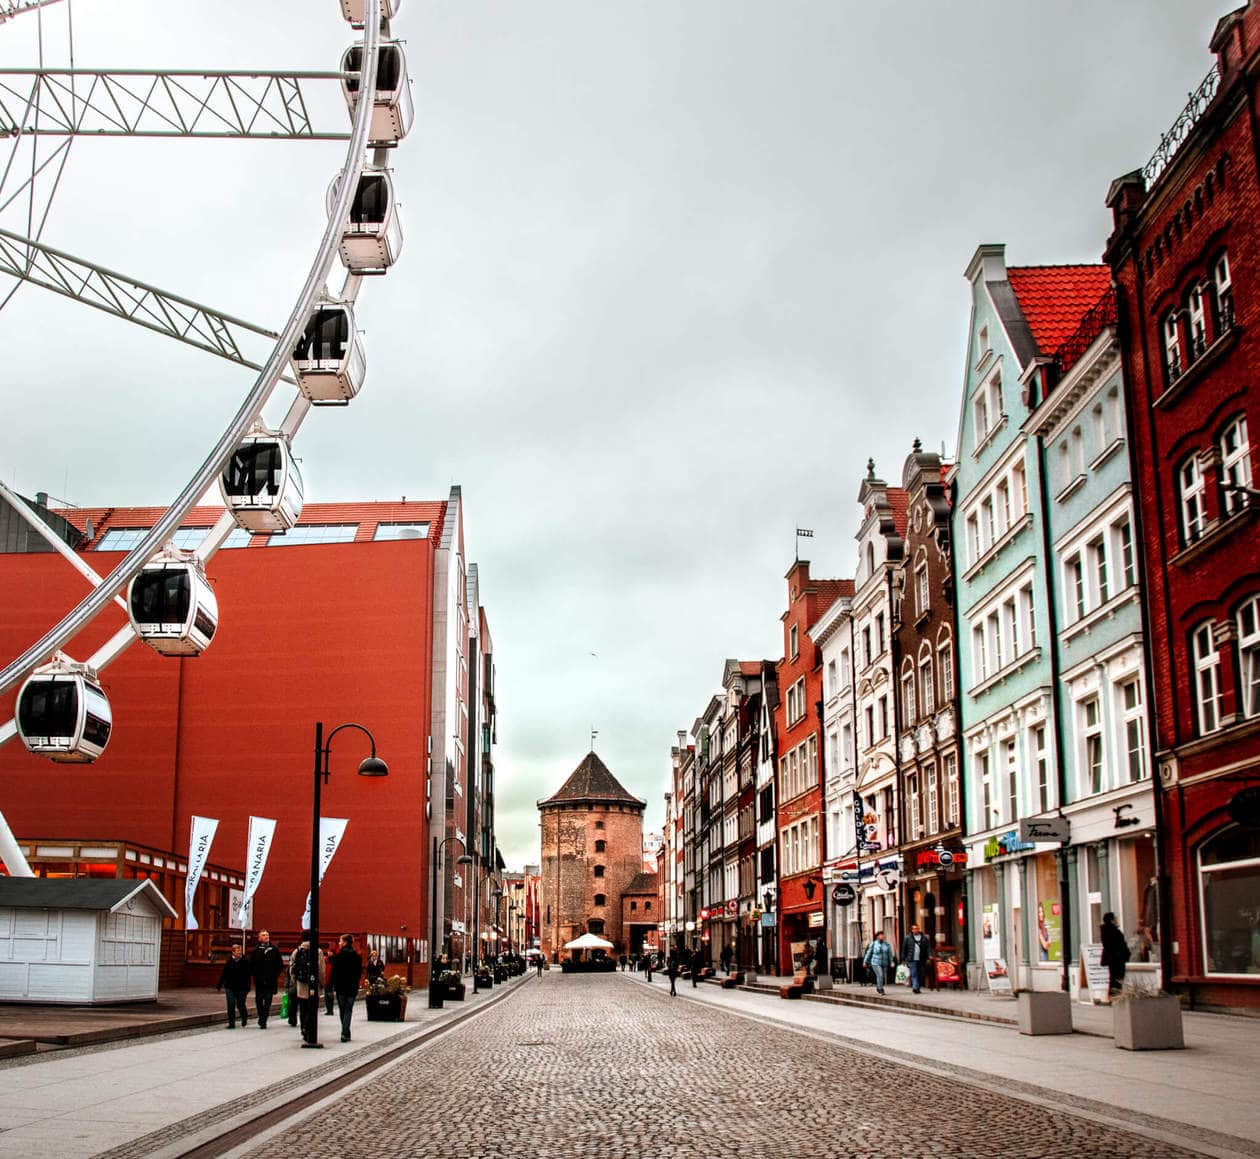 Ulica Stagiewna // There is no shortage of picturesque views, cozy streets and Instagrammable photo spots in Gdansk, Poland. Click to discover my top 6 streets for photo inspiration in Old Town.